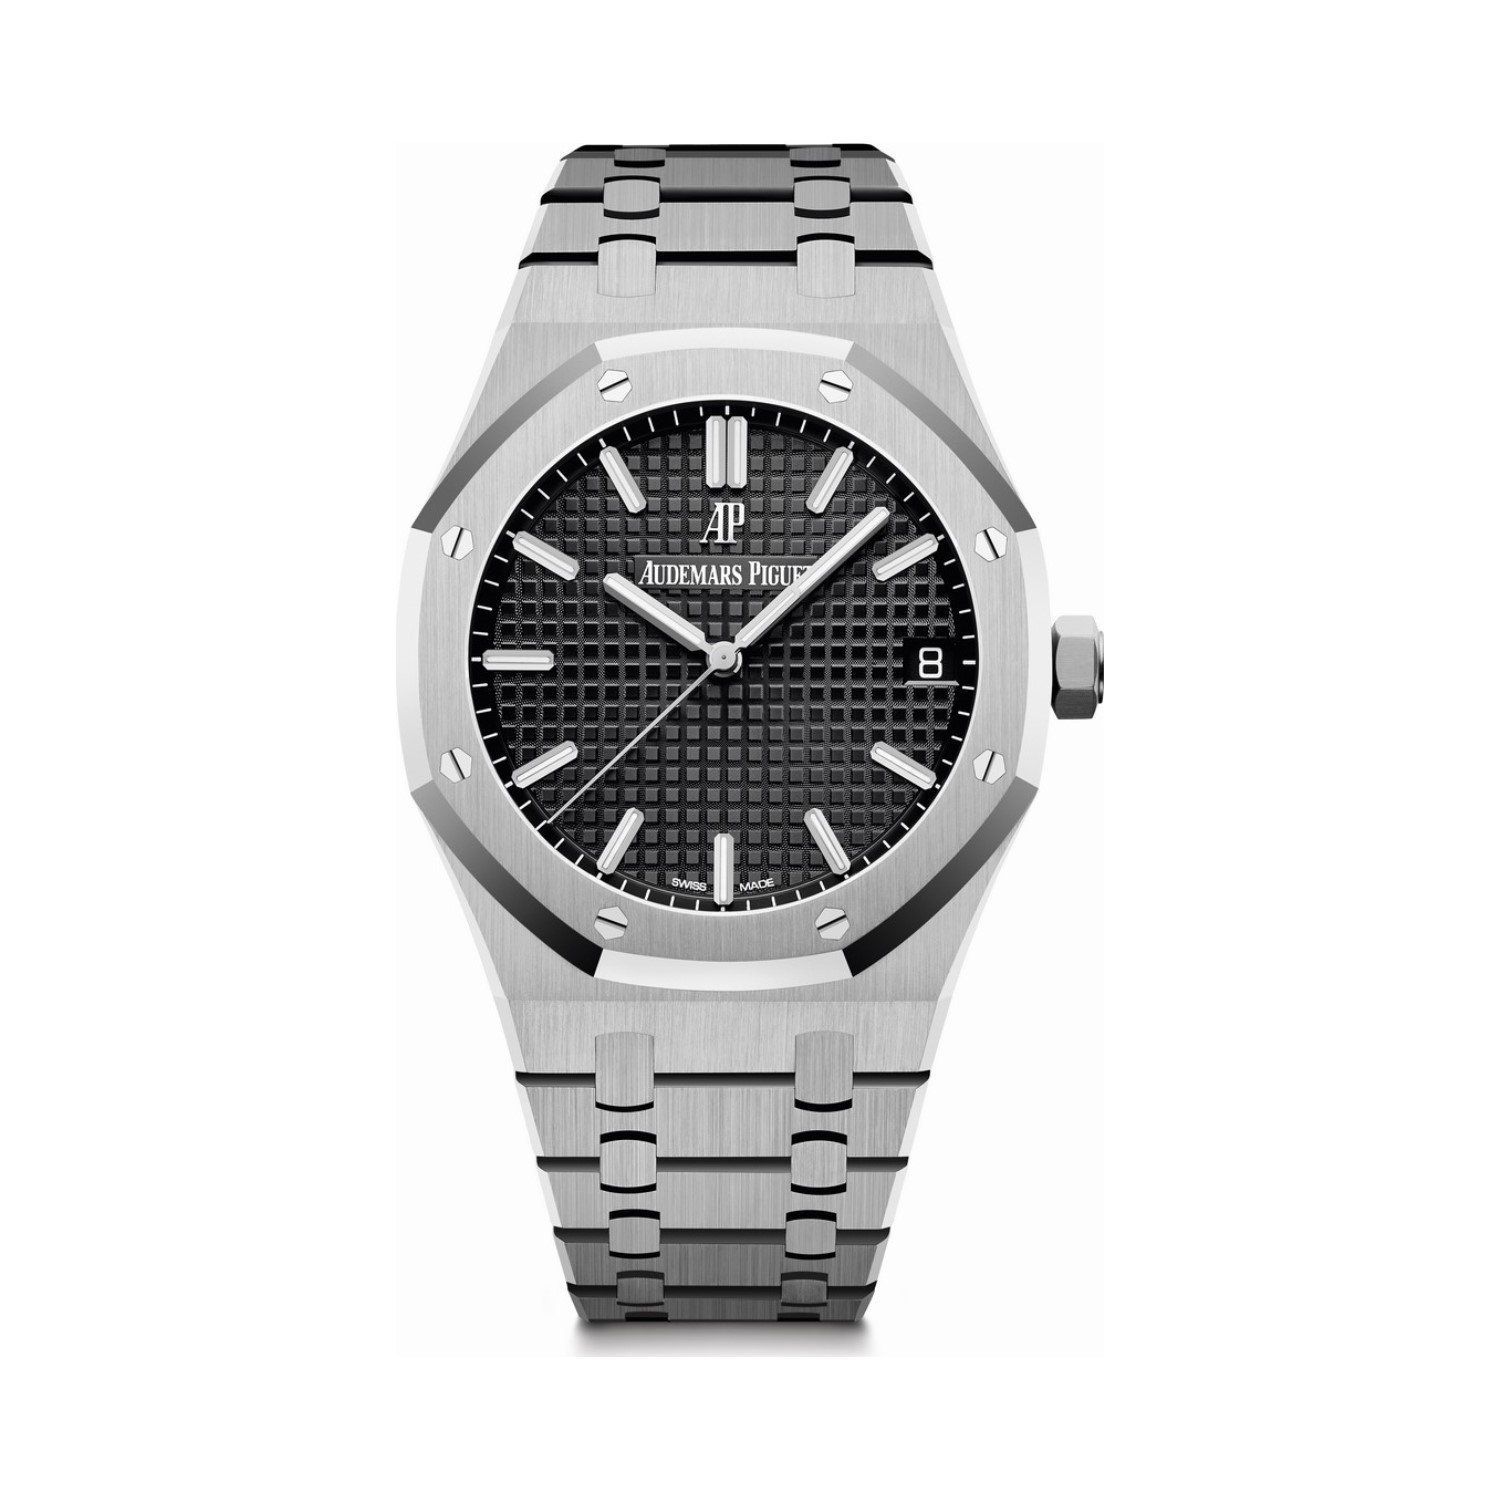 Montre Audemars Piguet Royal Oak Automatique vue 1